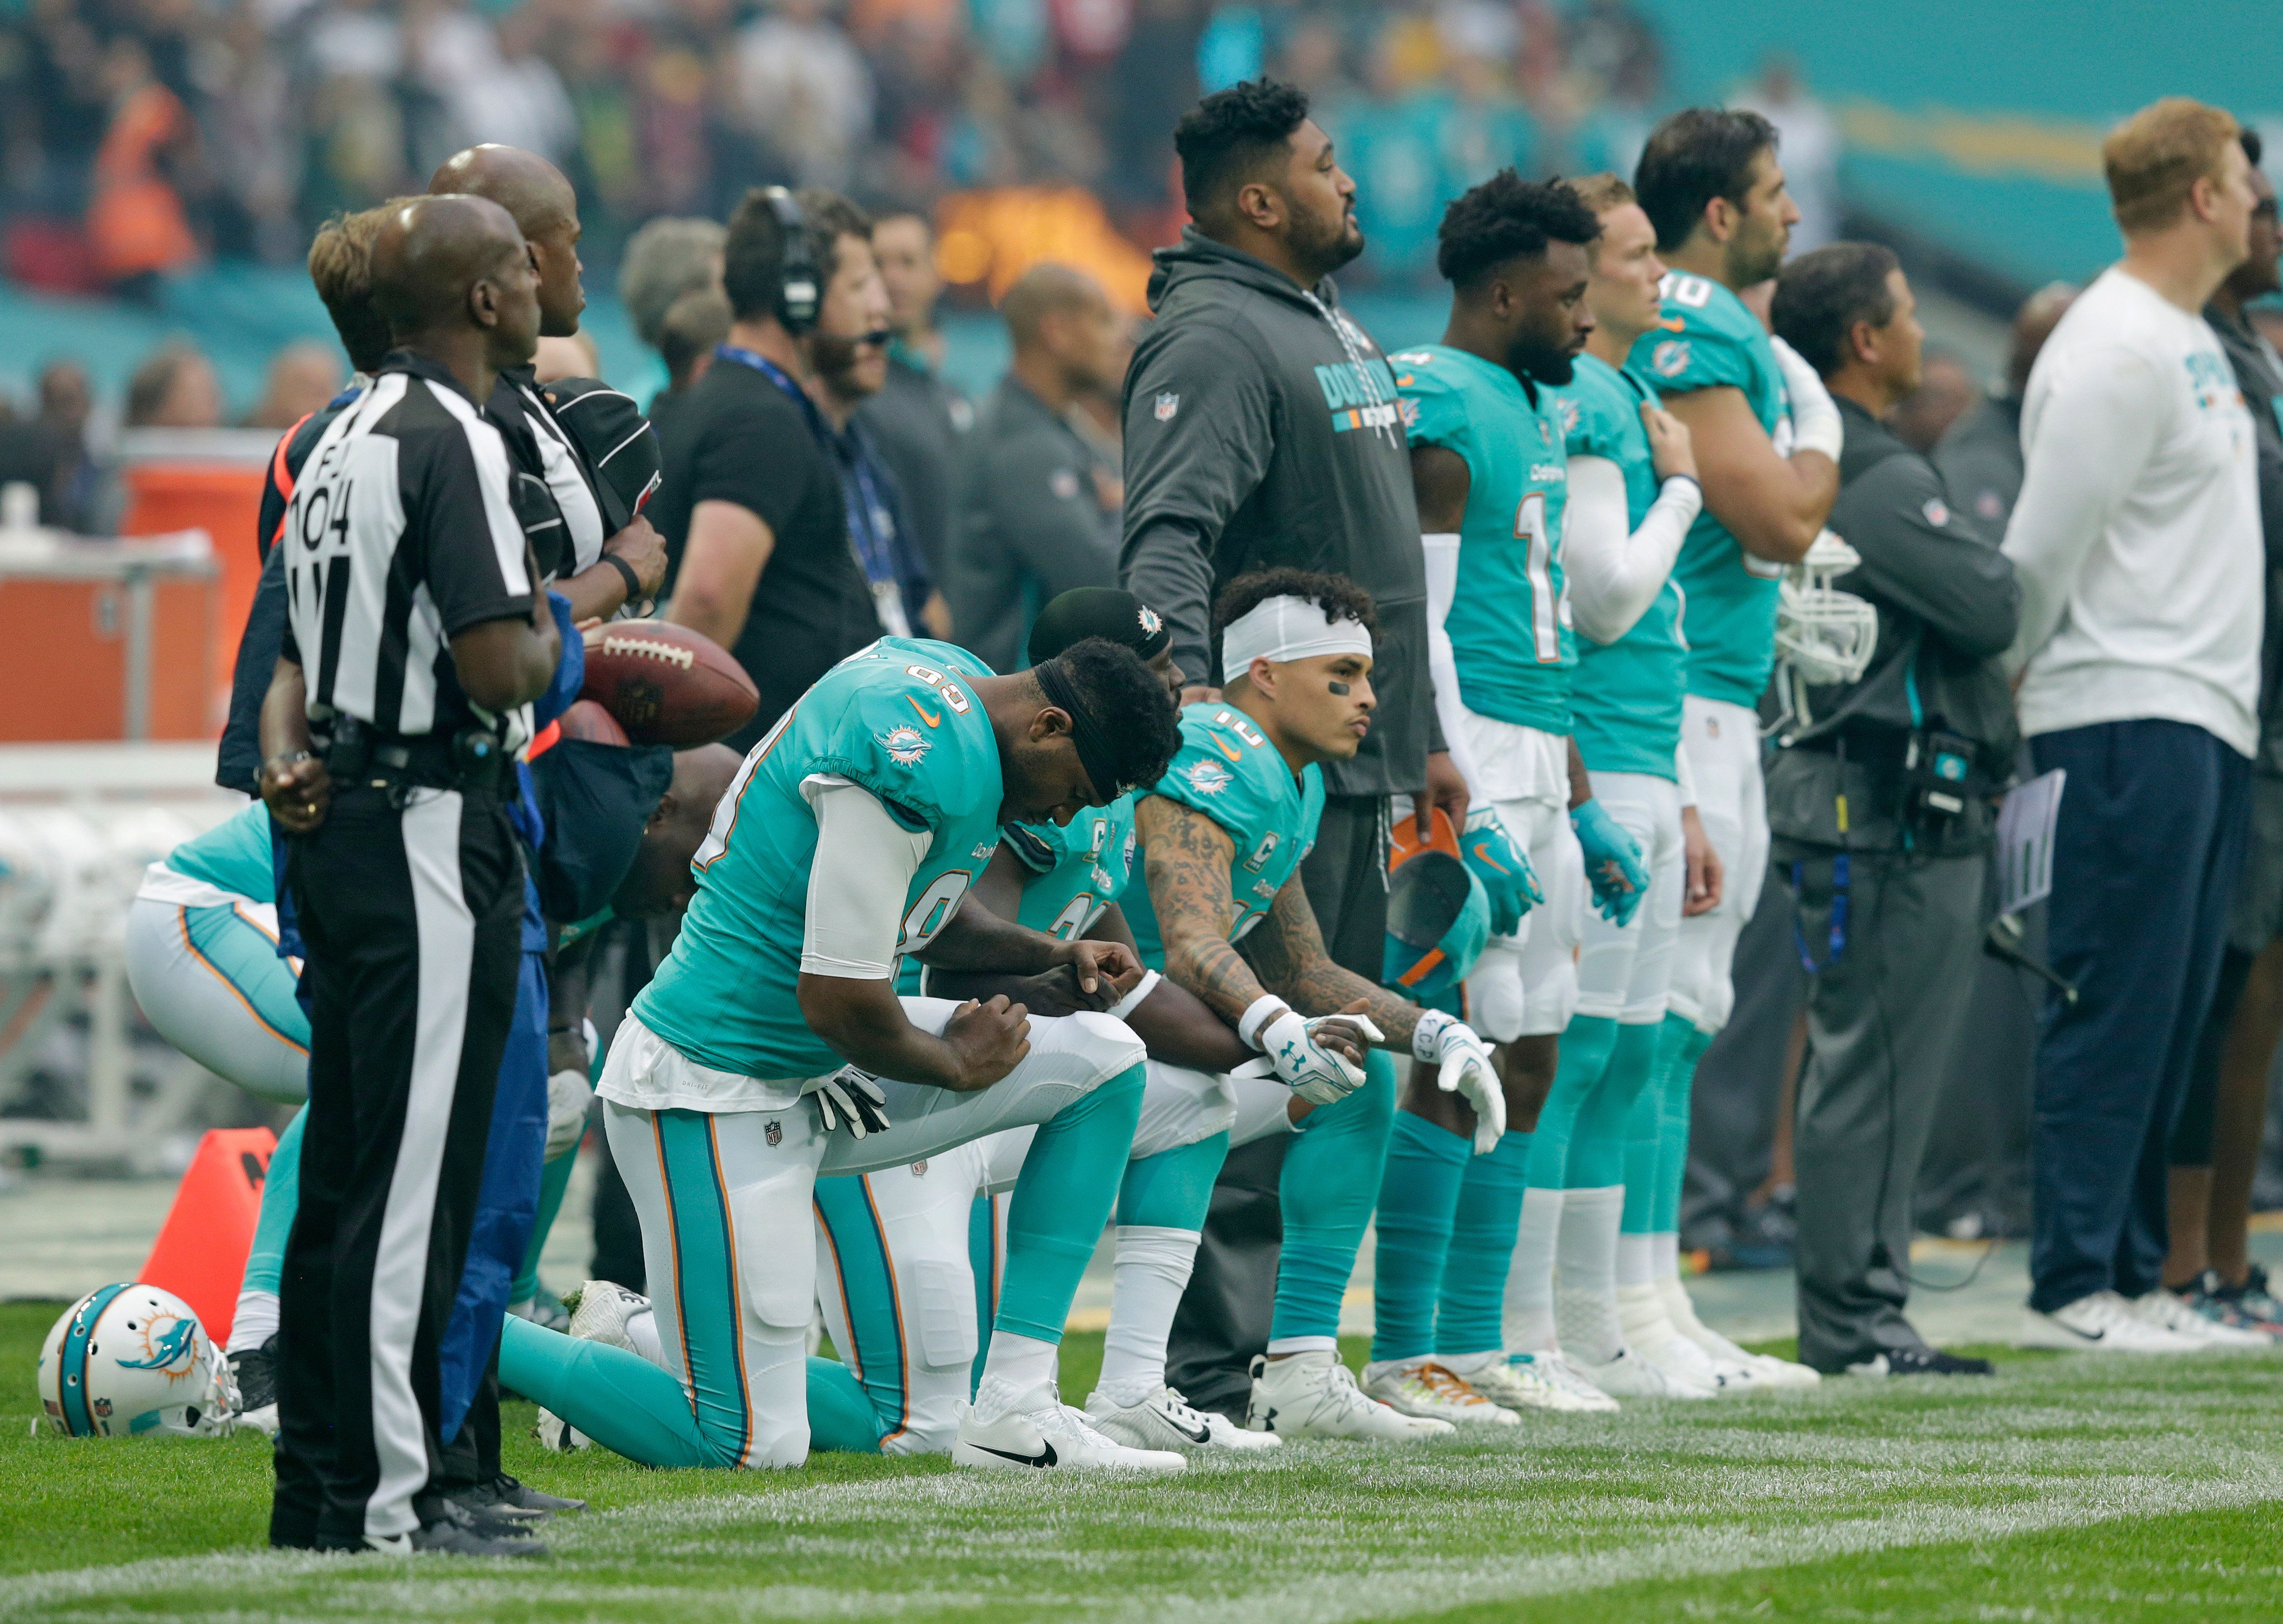 Dolphins playersKenny Stills, Michael Thomas and Julius Thomas kneel before their Sunday game in...